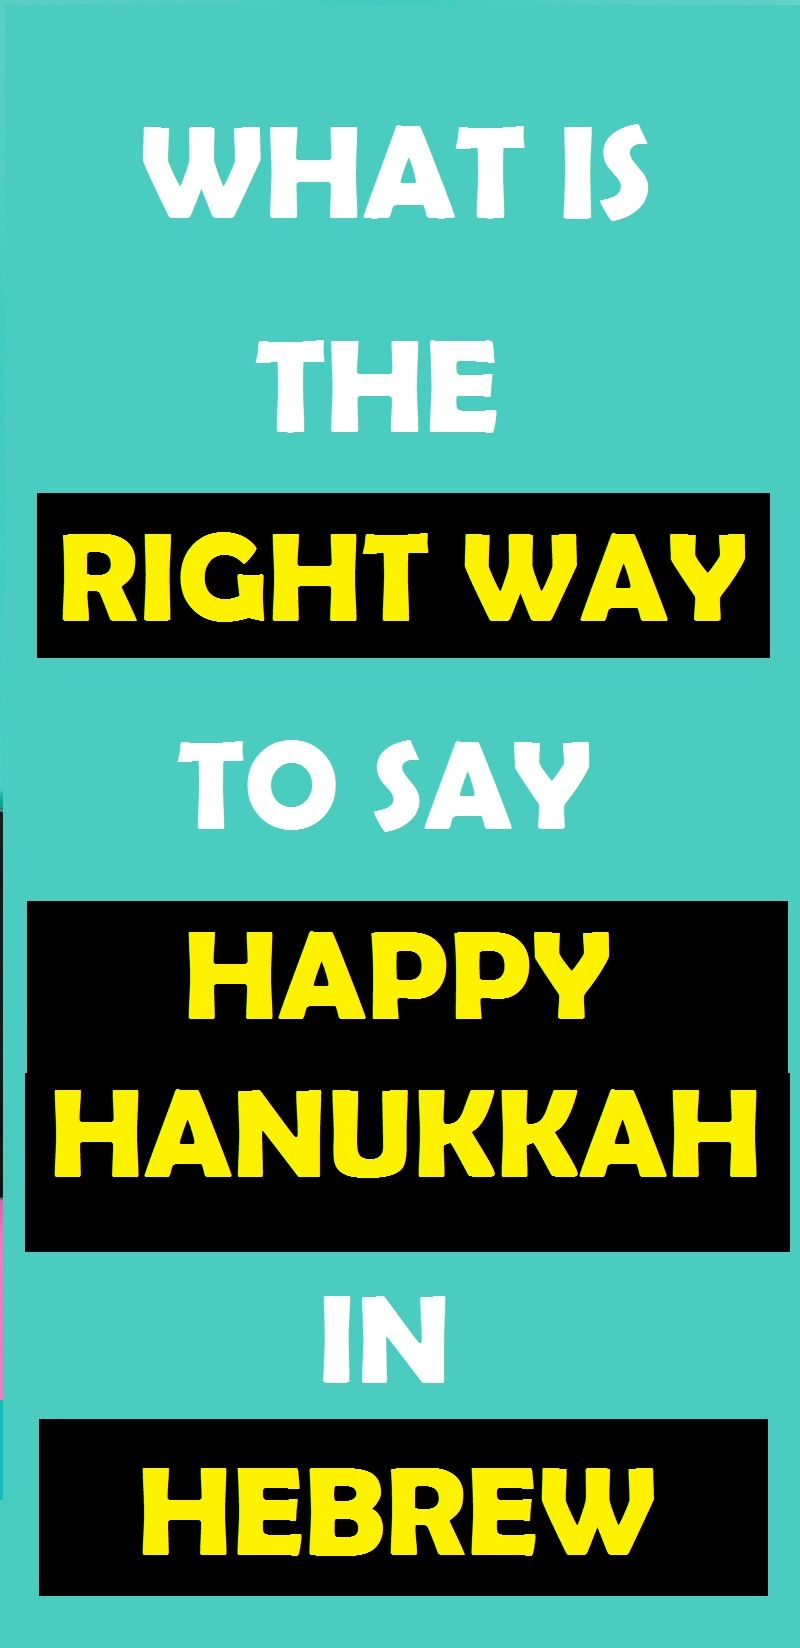 What Is The Right Way To Say Happy Hanukkah In Hebrew Festival